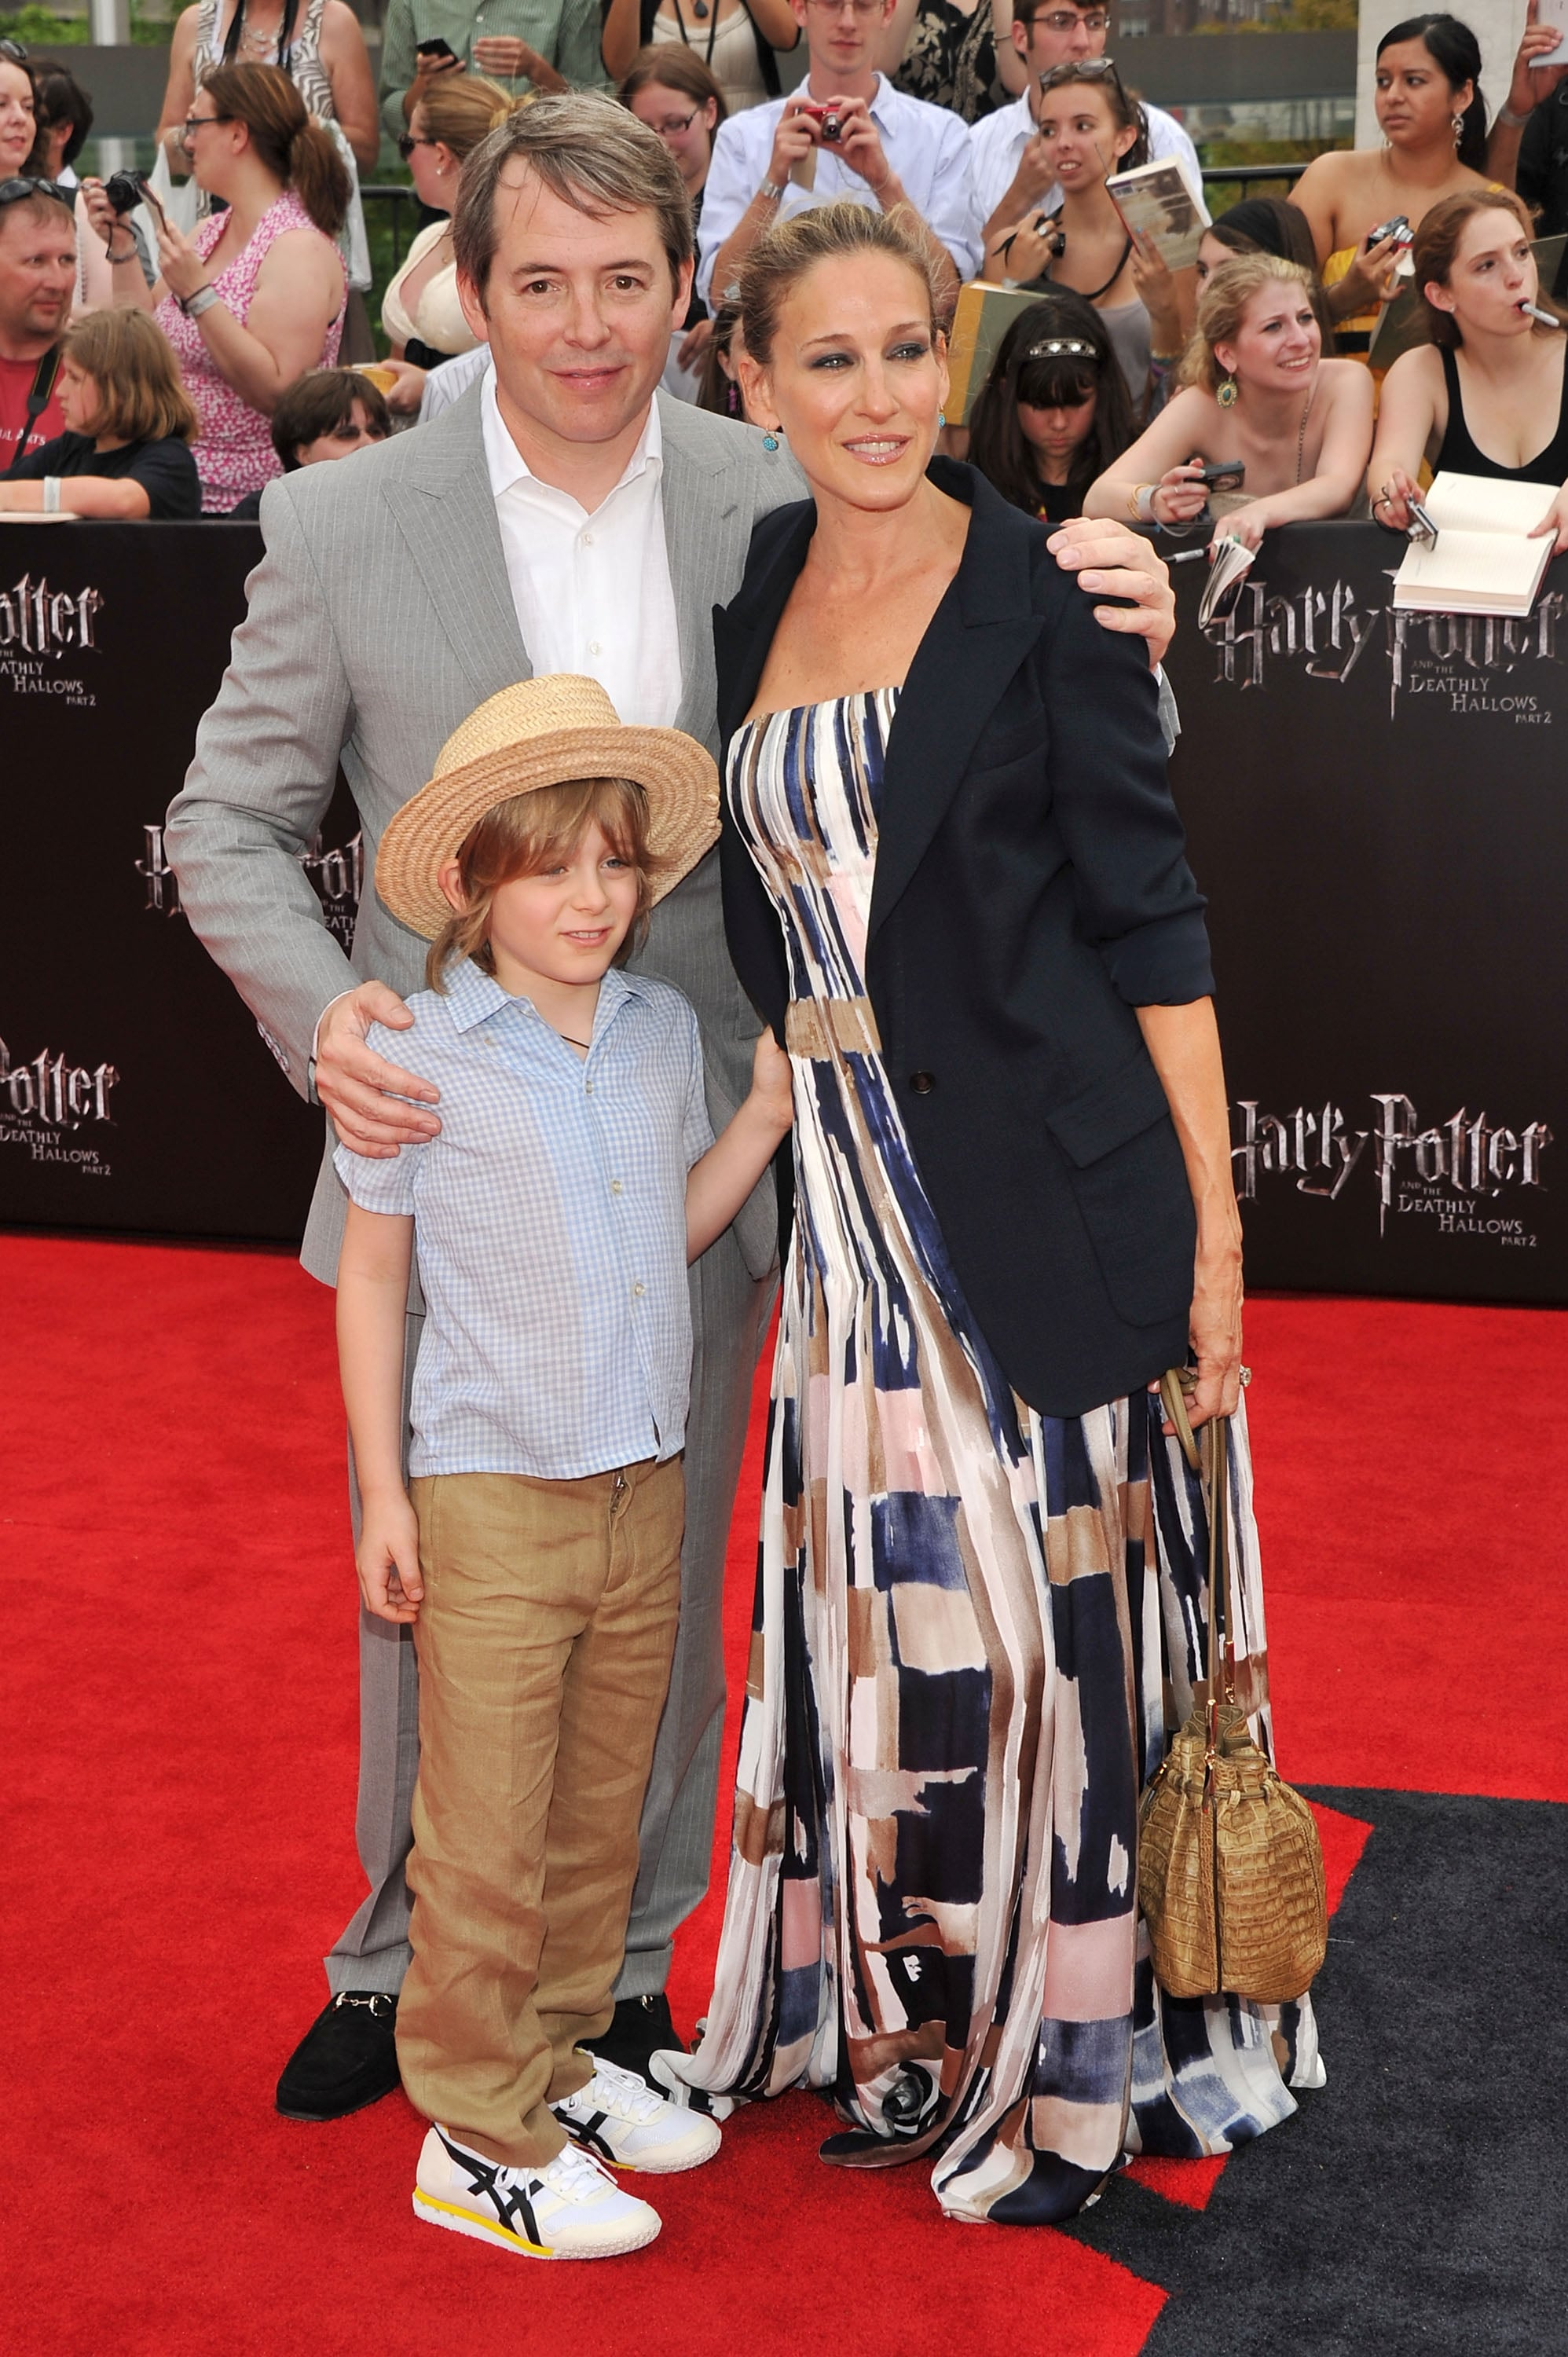 Sarah Jessica Parker, Matthew Broderick, and James Wilkie at the Harry Potter and the Deathly Hallows Part 2 premiere in NYC.